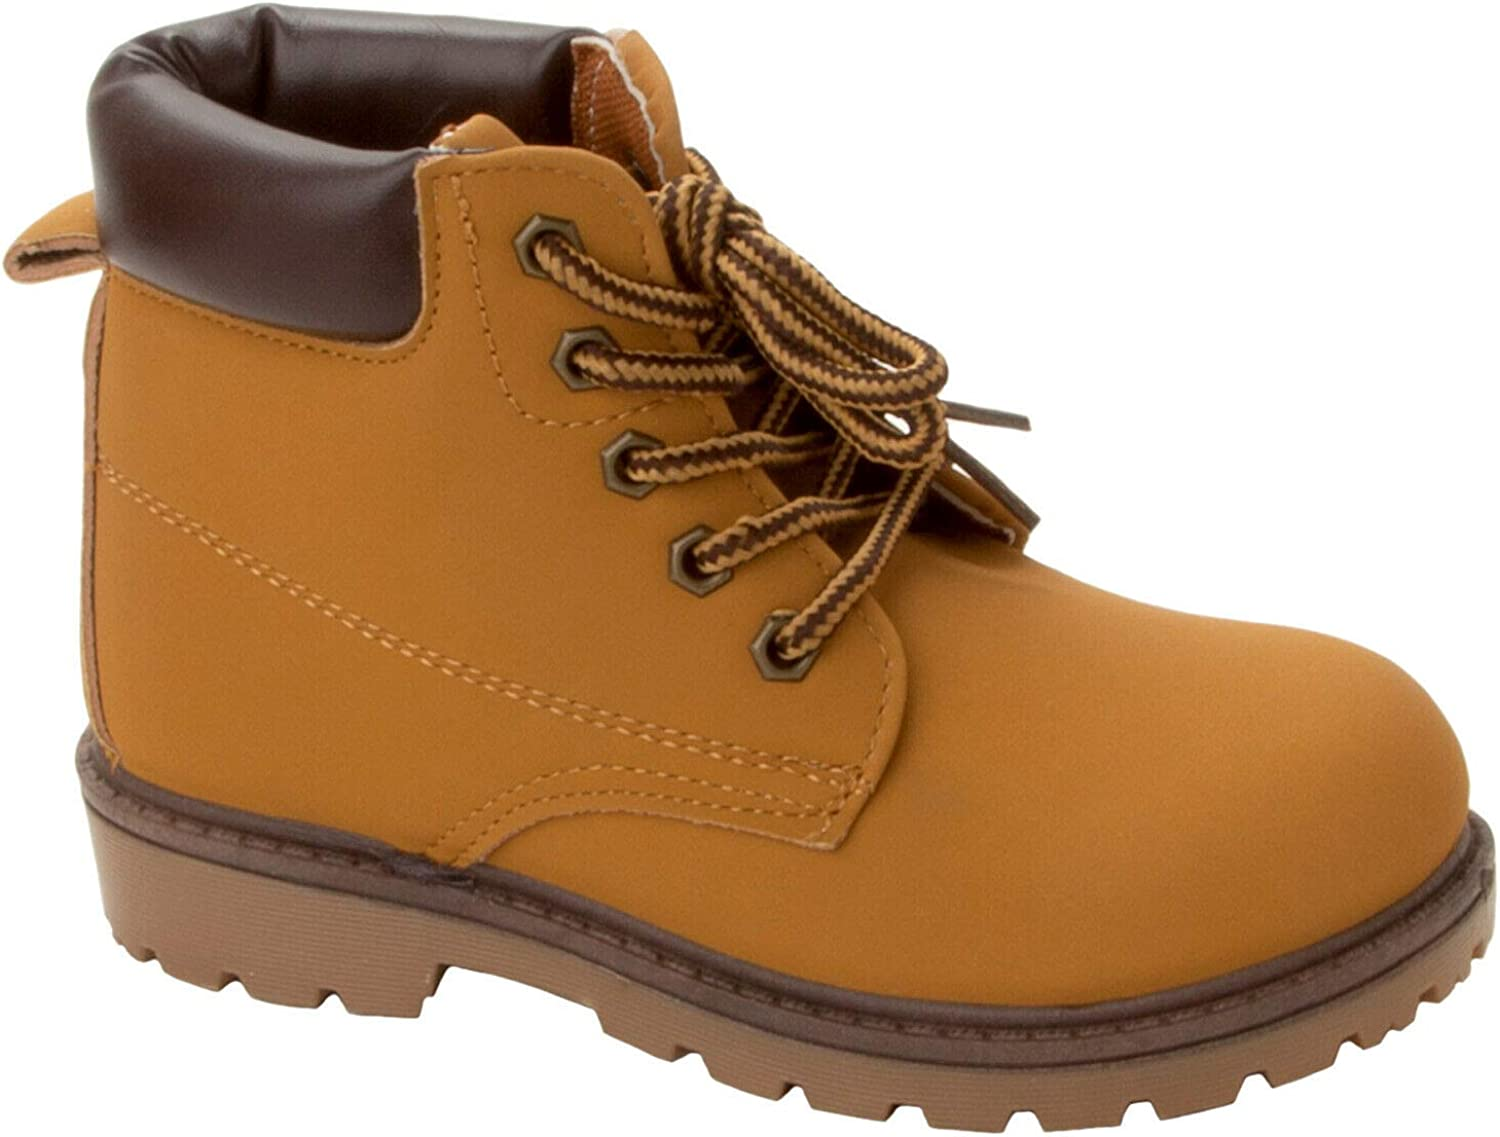 Boys TAN LACE UP Casual Winter HI TOP Ankle Desert Walking Boots Shoes Kids Size